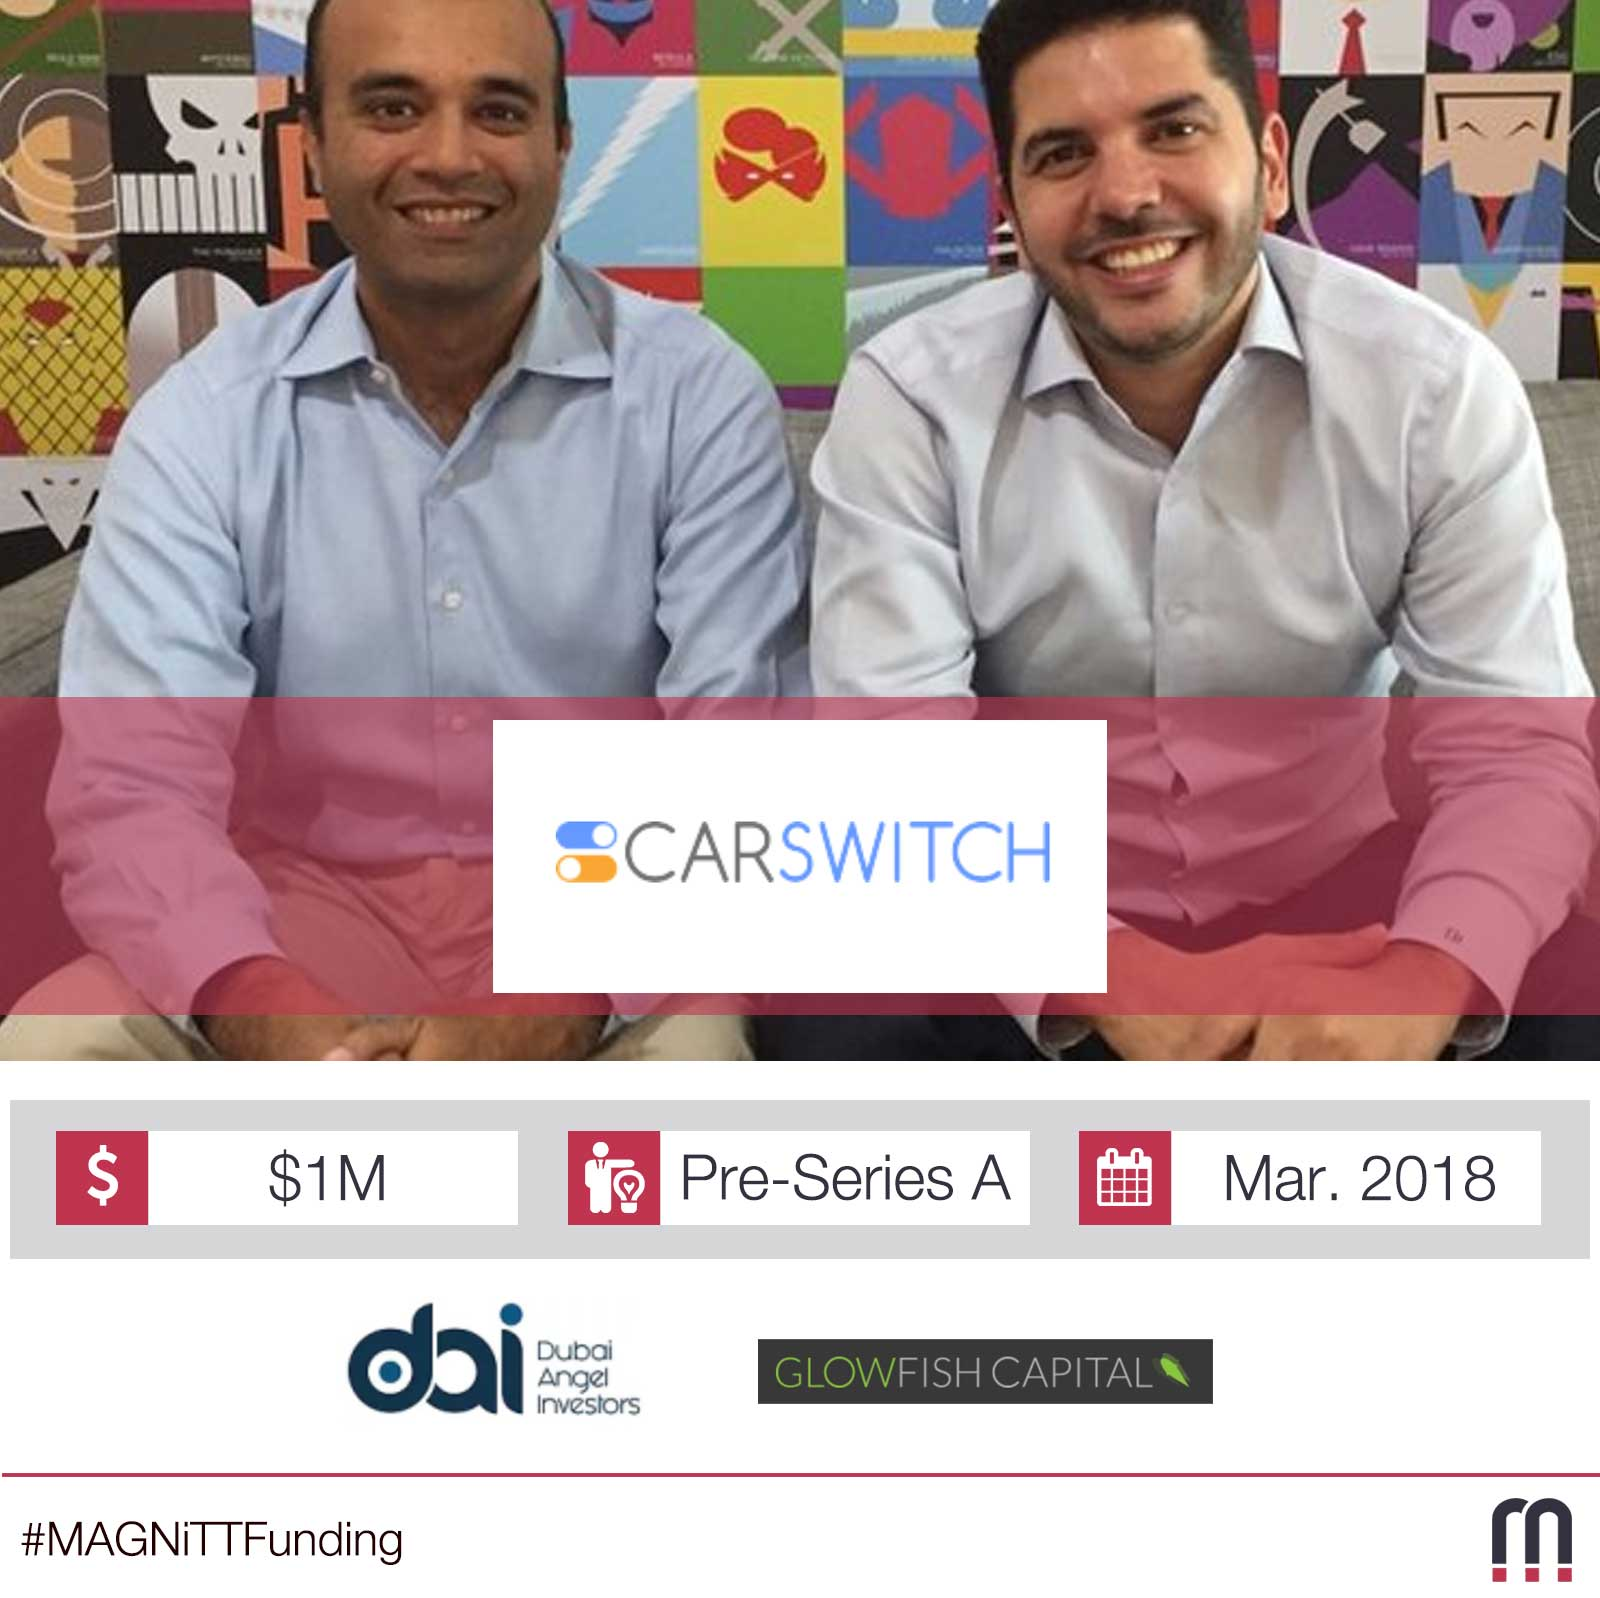 Dubai-based CarSwitch.com raises additional $1m in funding